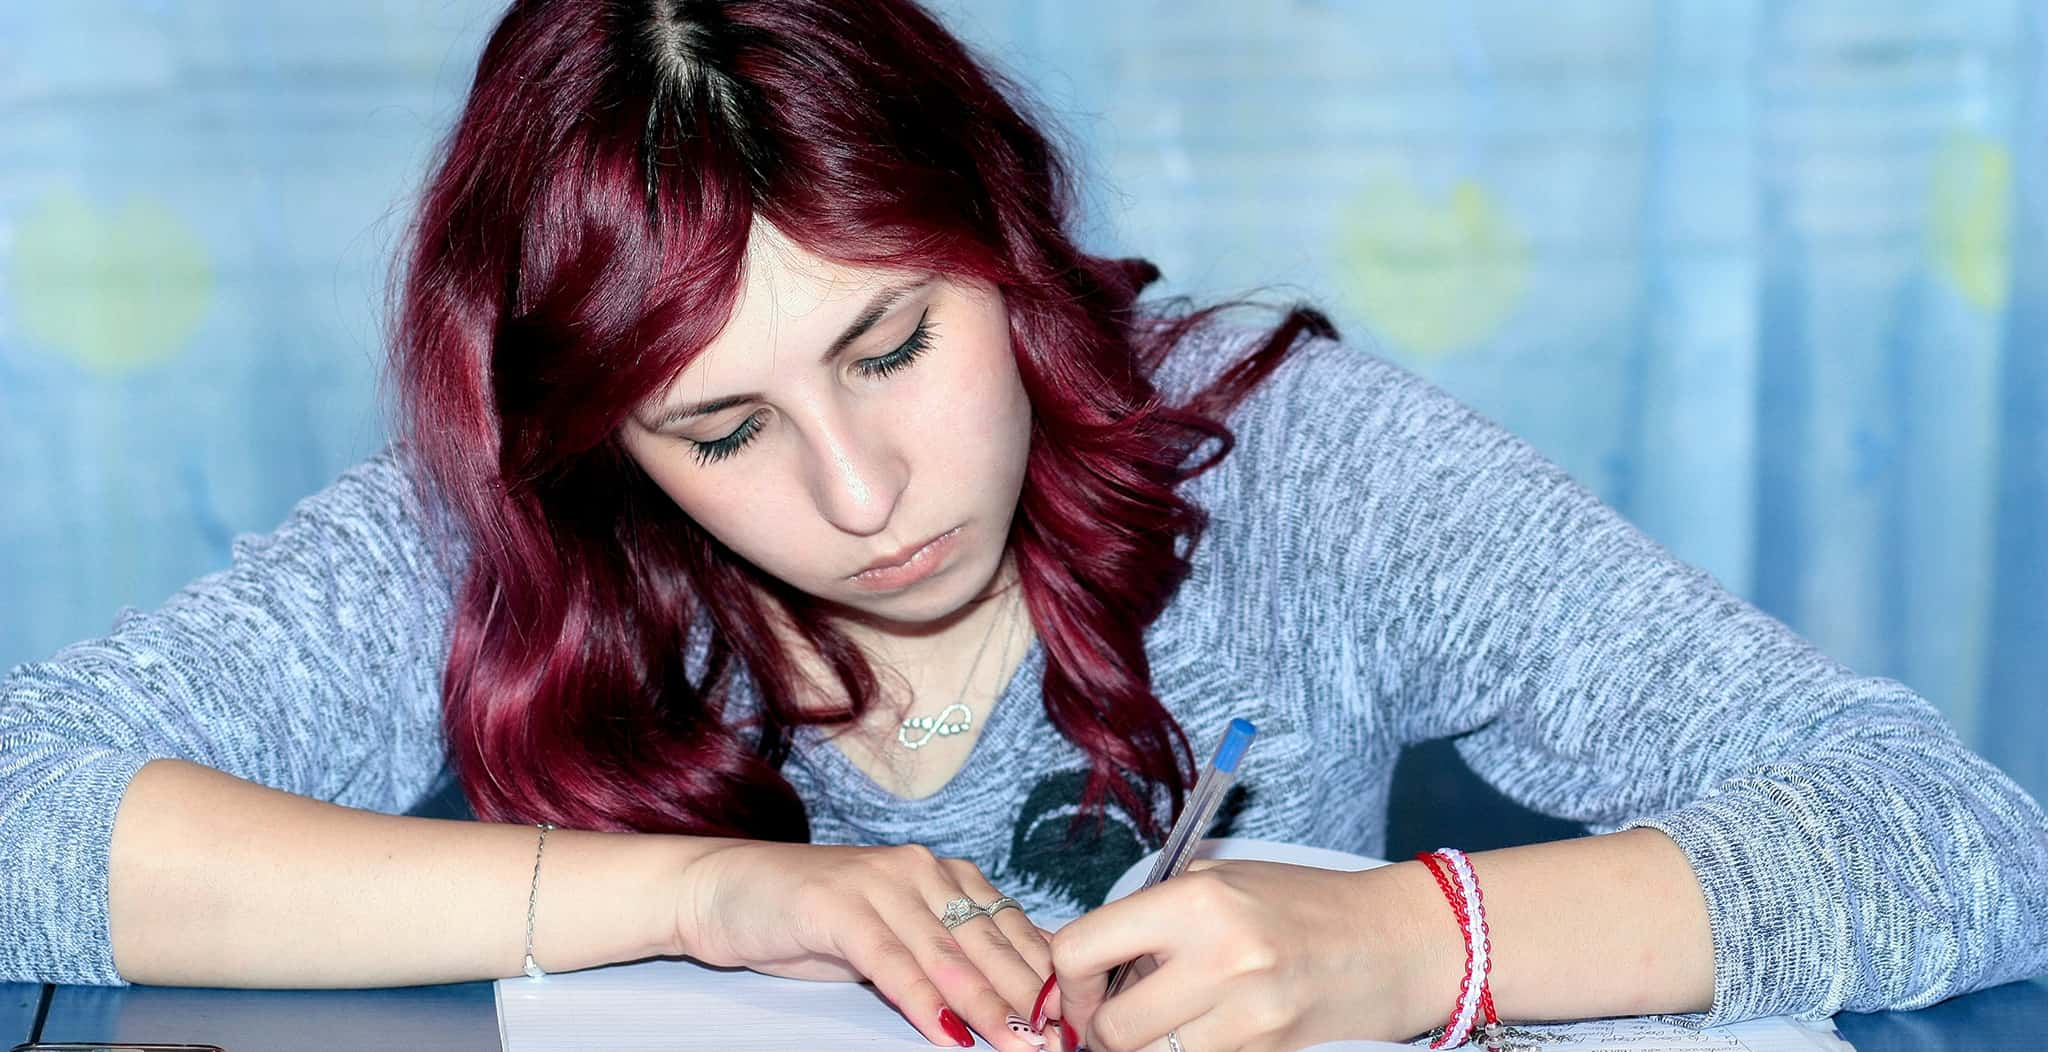 [Image description: A woman with pale skin and red hair taking an exam] via Pexels